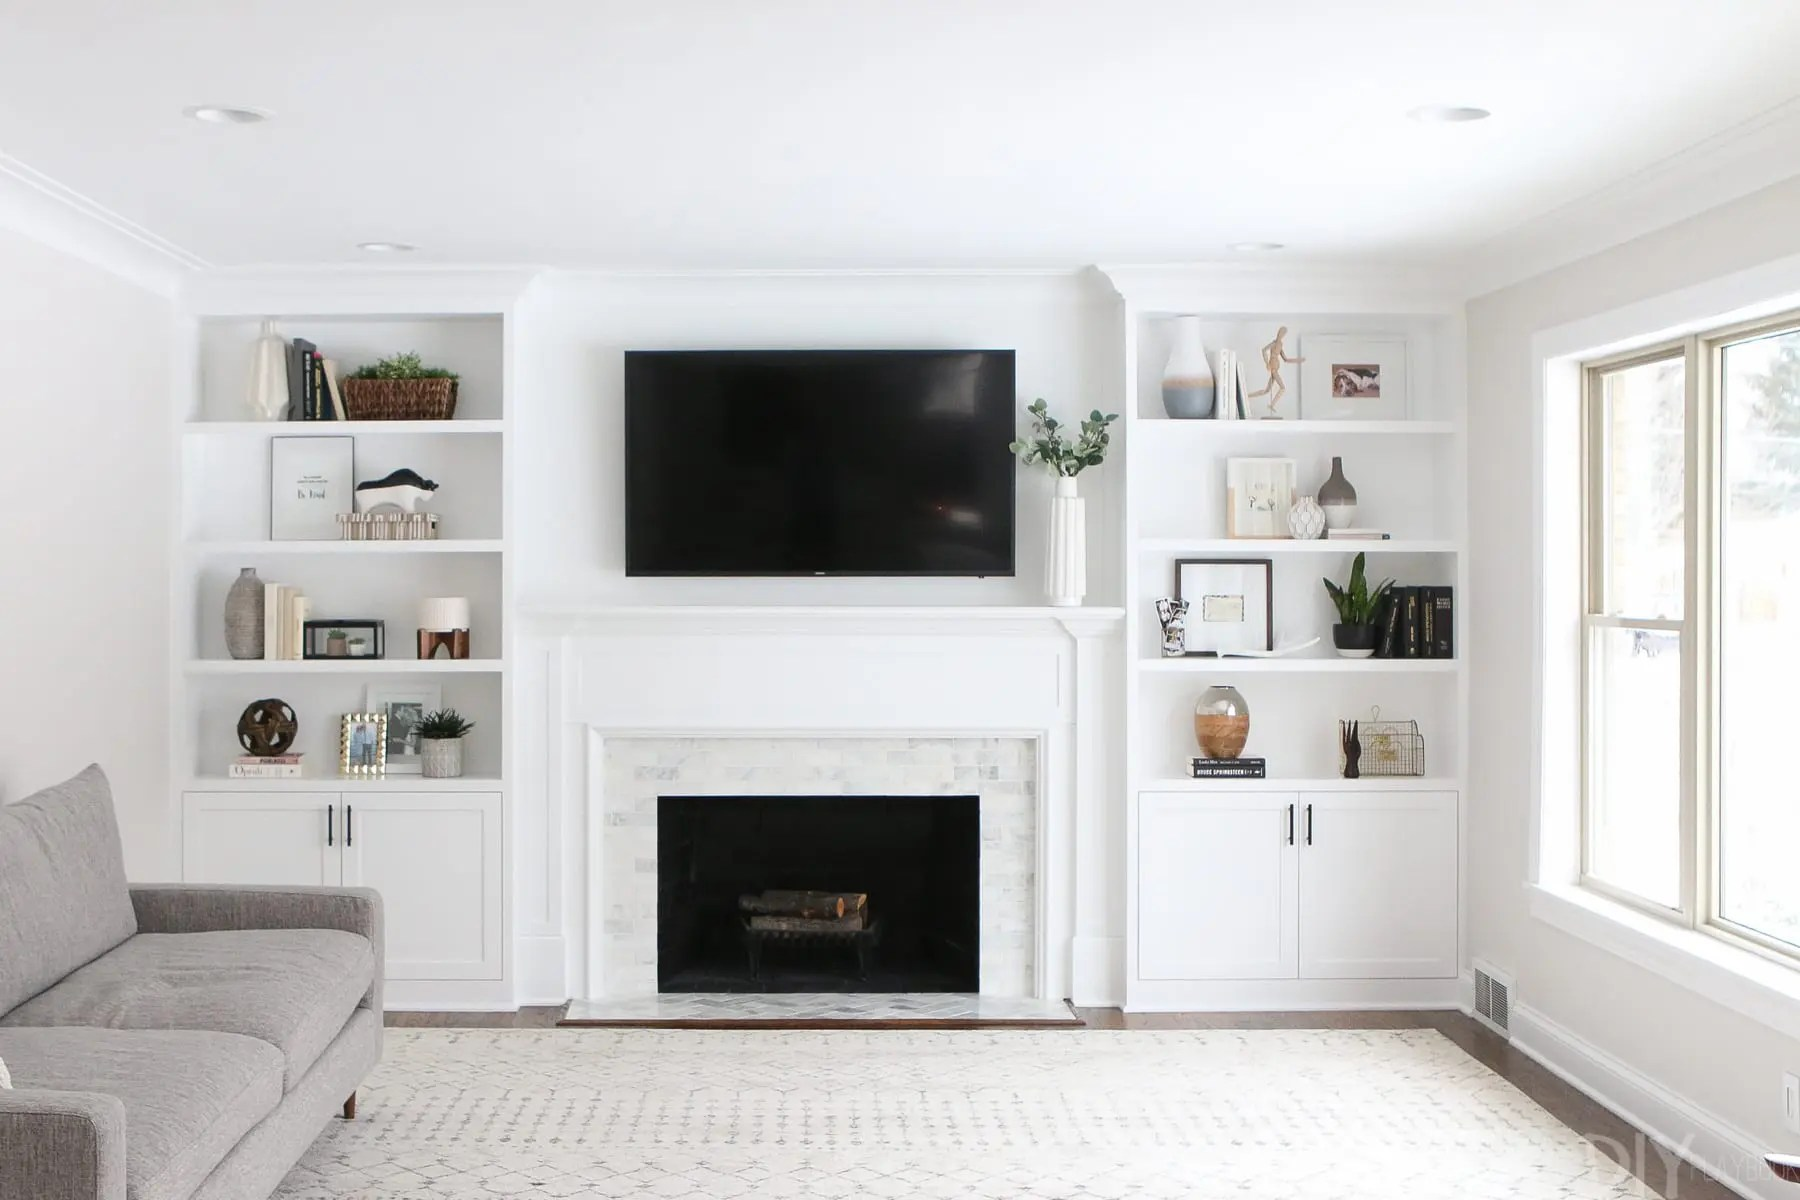 Design Ideas For Family Room With Fireplace The Dos And Don Ts Of Decorating Built In Shelves The Diy Playbook